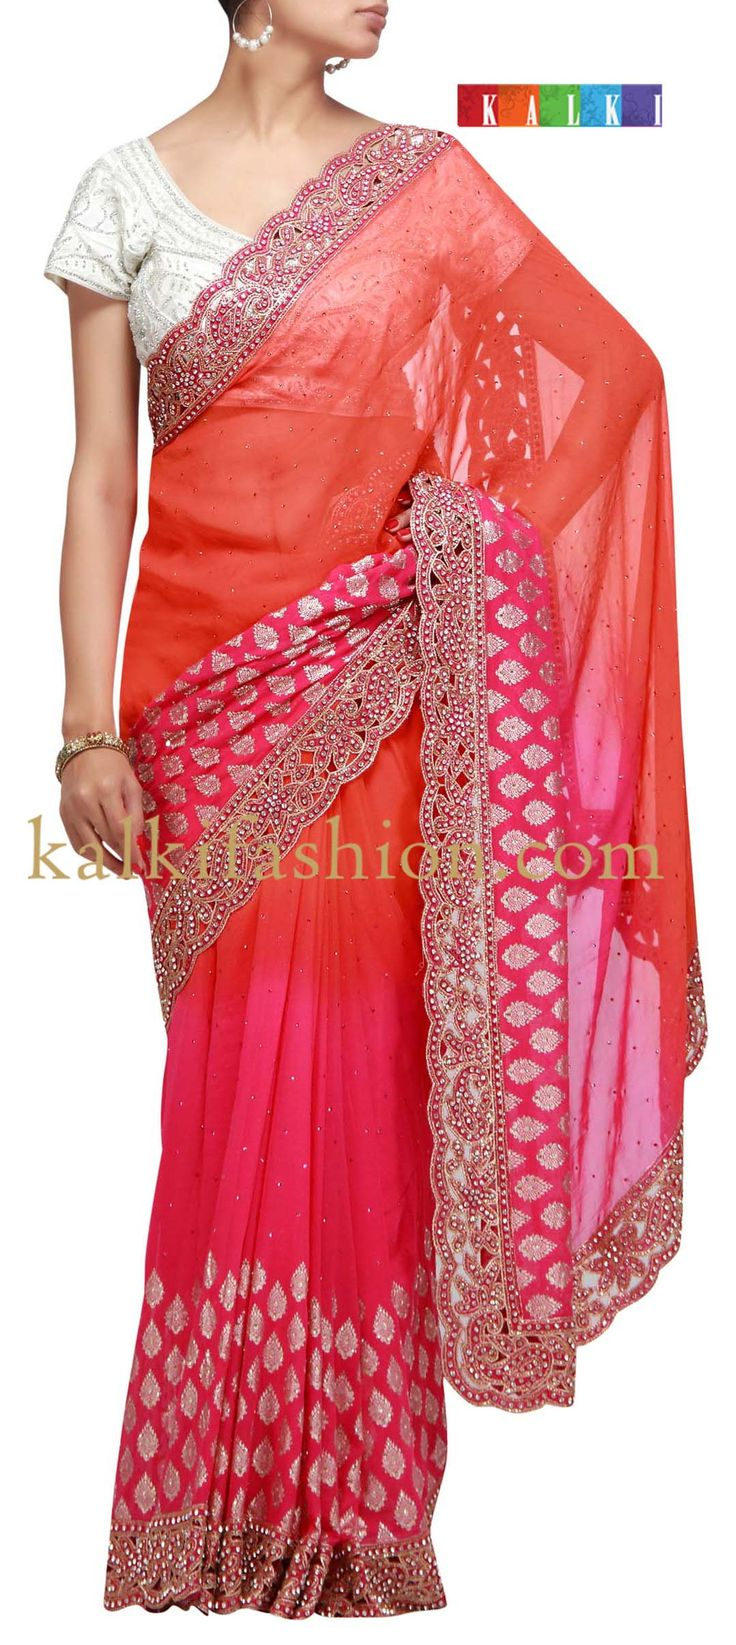 Buy it now  http://www.kalkifashion.com/dyed-saree-in-pink-and-orange-with-cut-work-embroidery-handmade.html  Dyed saree in pink and orange with cut work embroidery Handmade